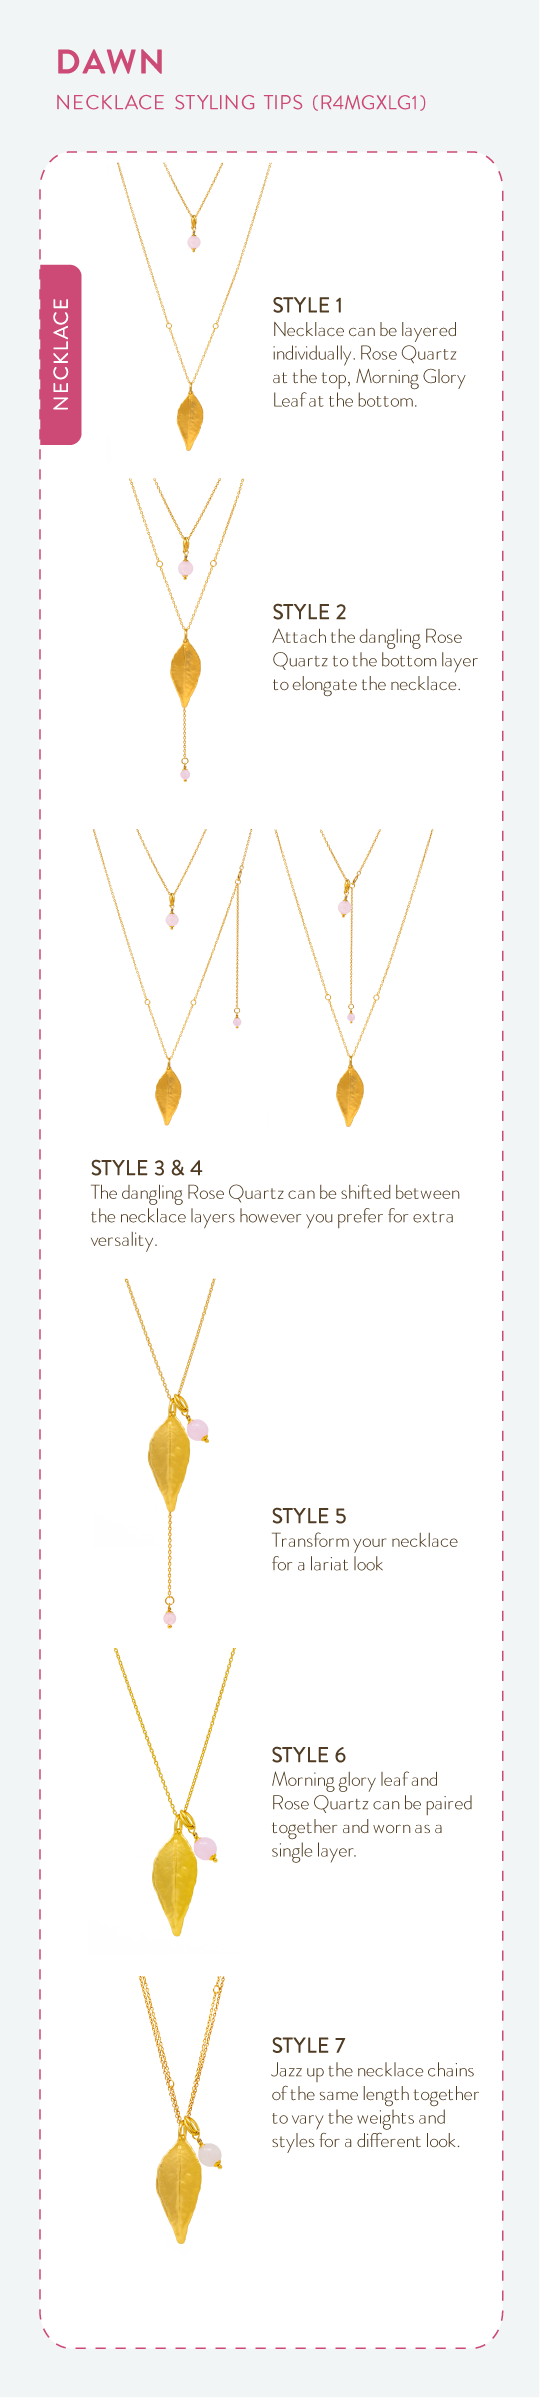 blog-styleguide-dawn-necklace-R4MGXLG1-1